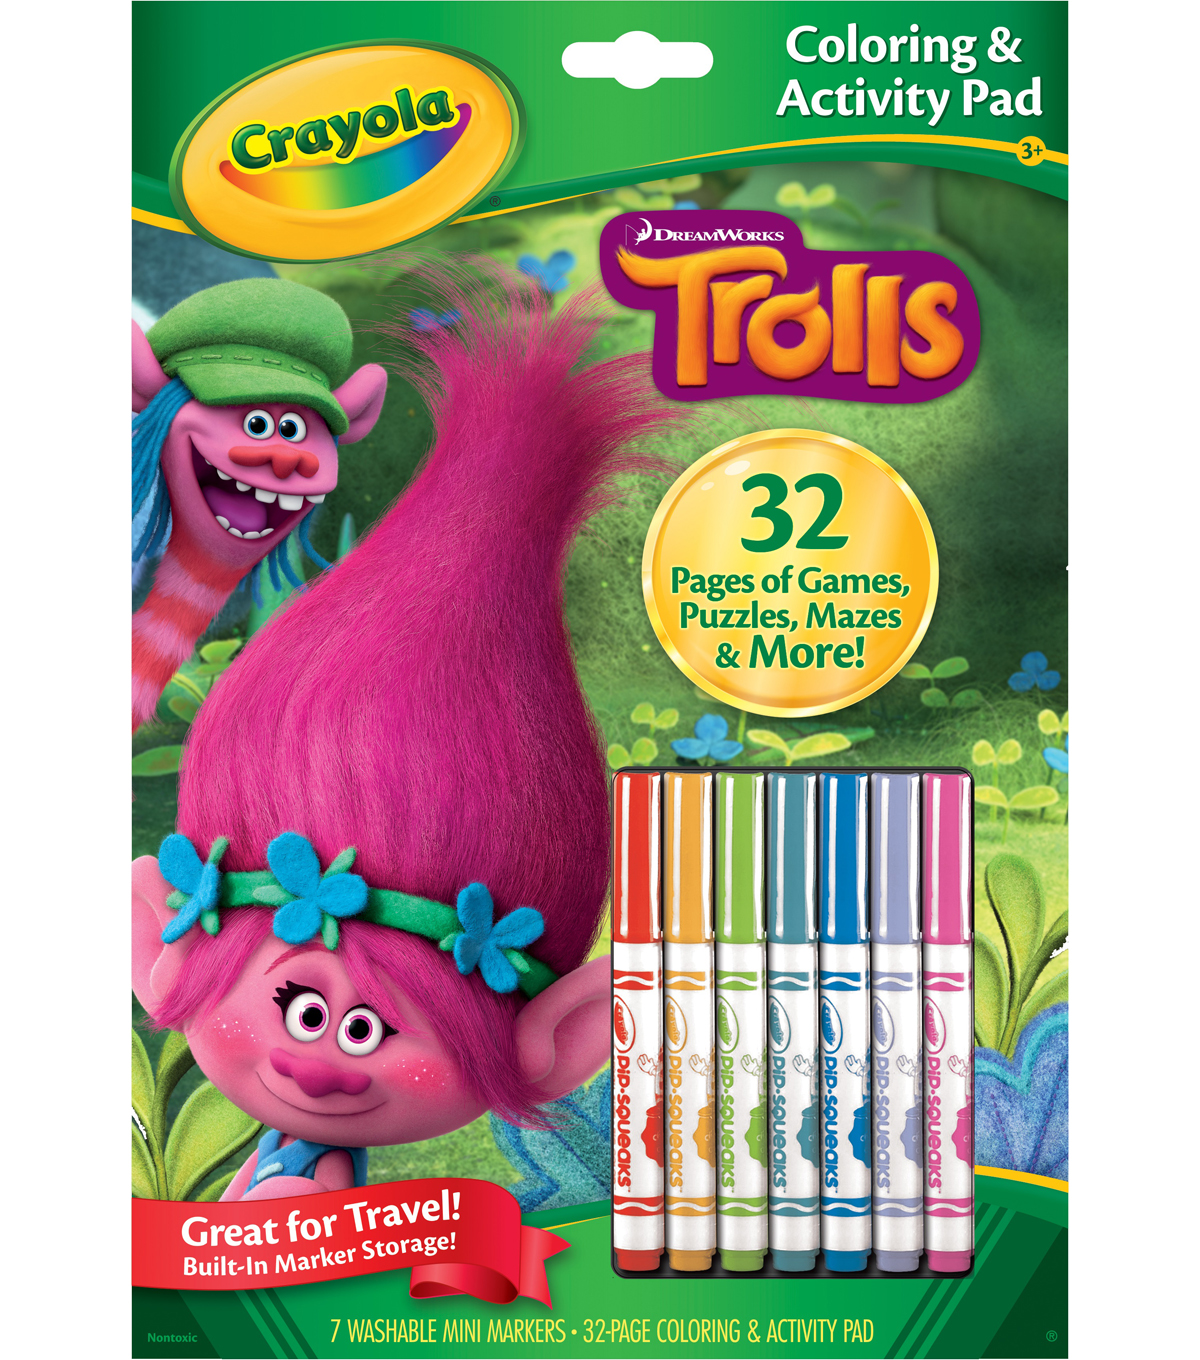 Crayola Dreamworks Trolls Coloring & Activity Pad